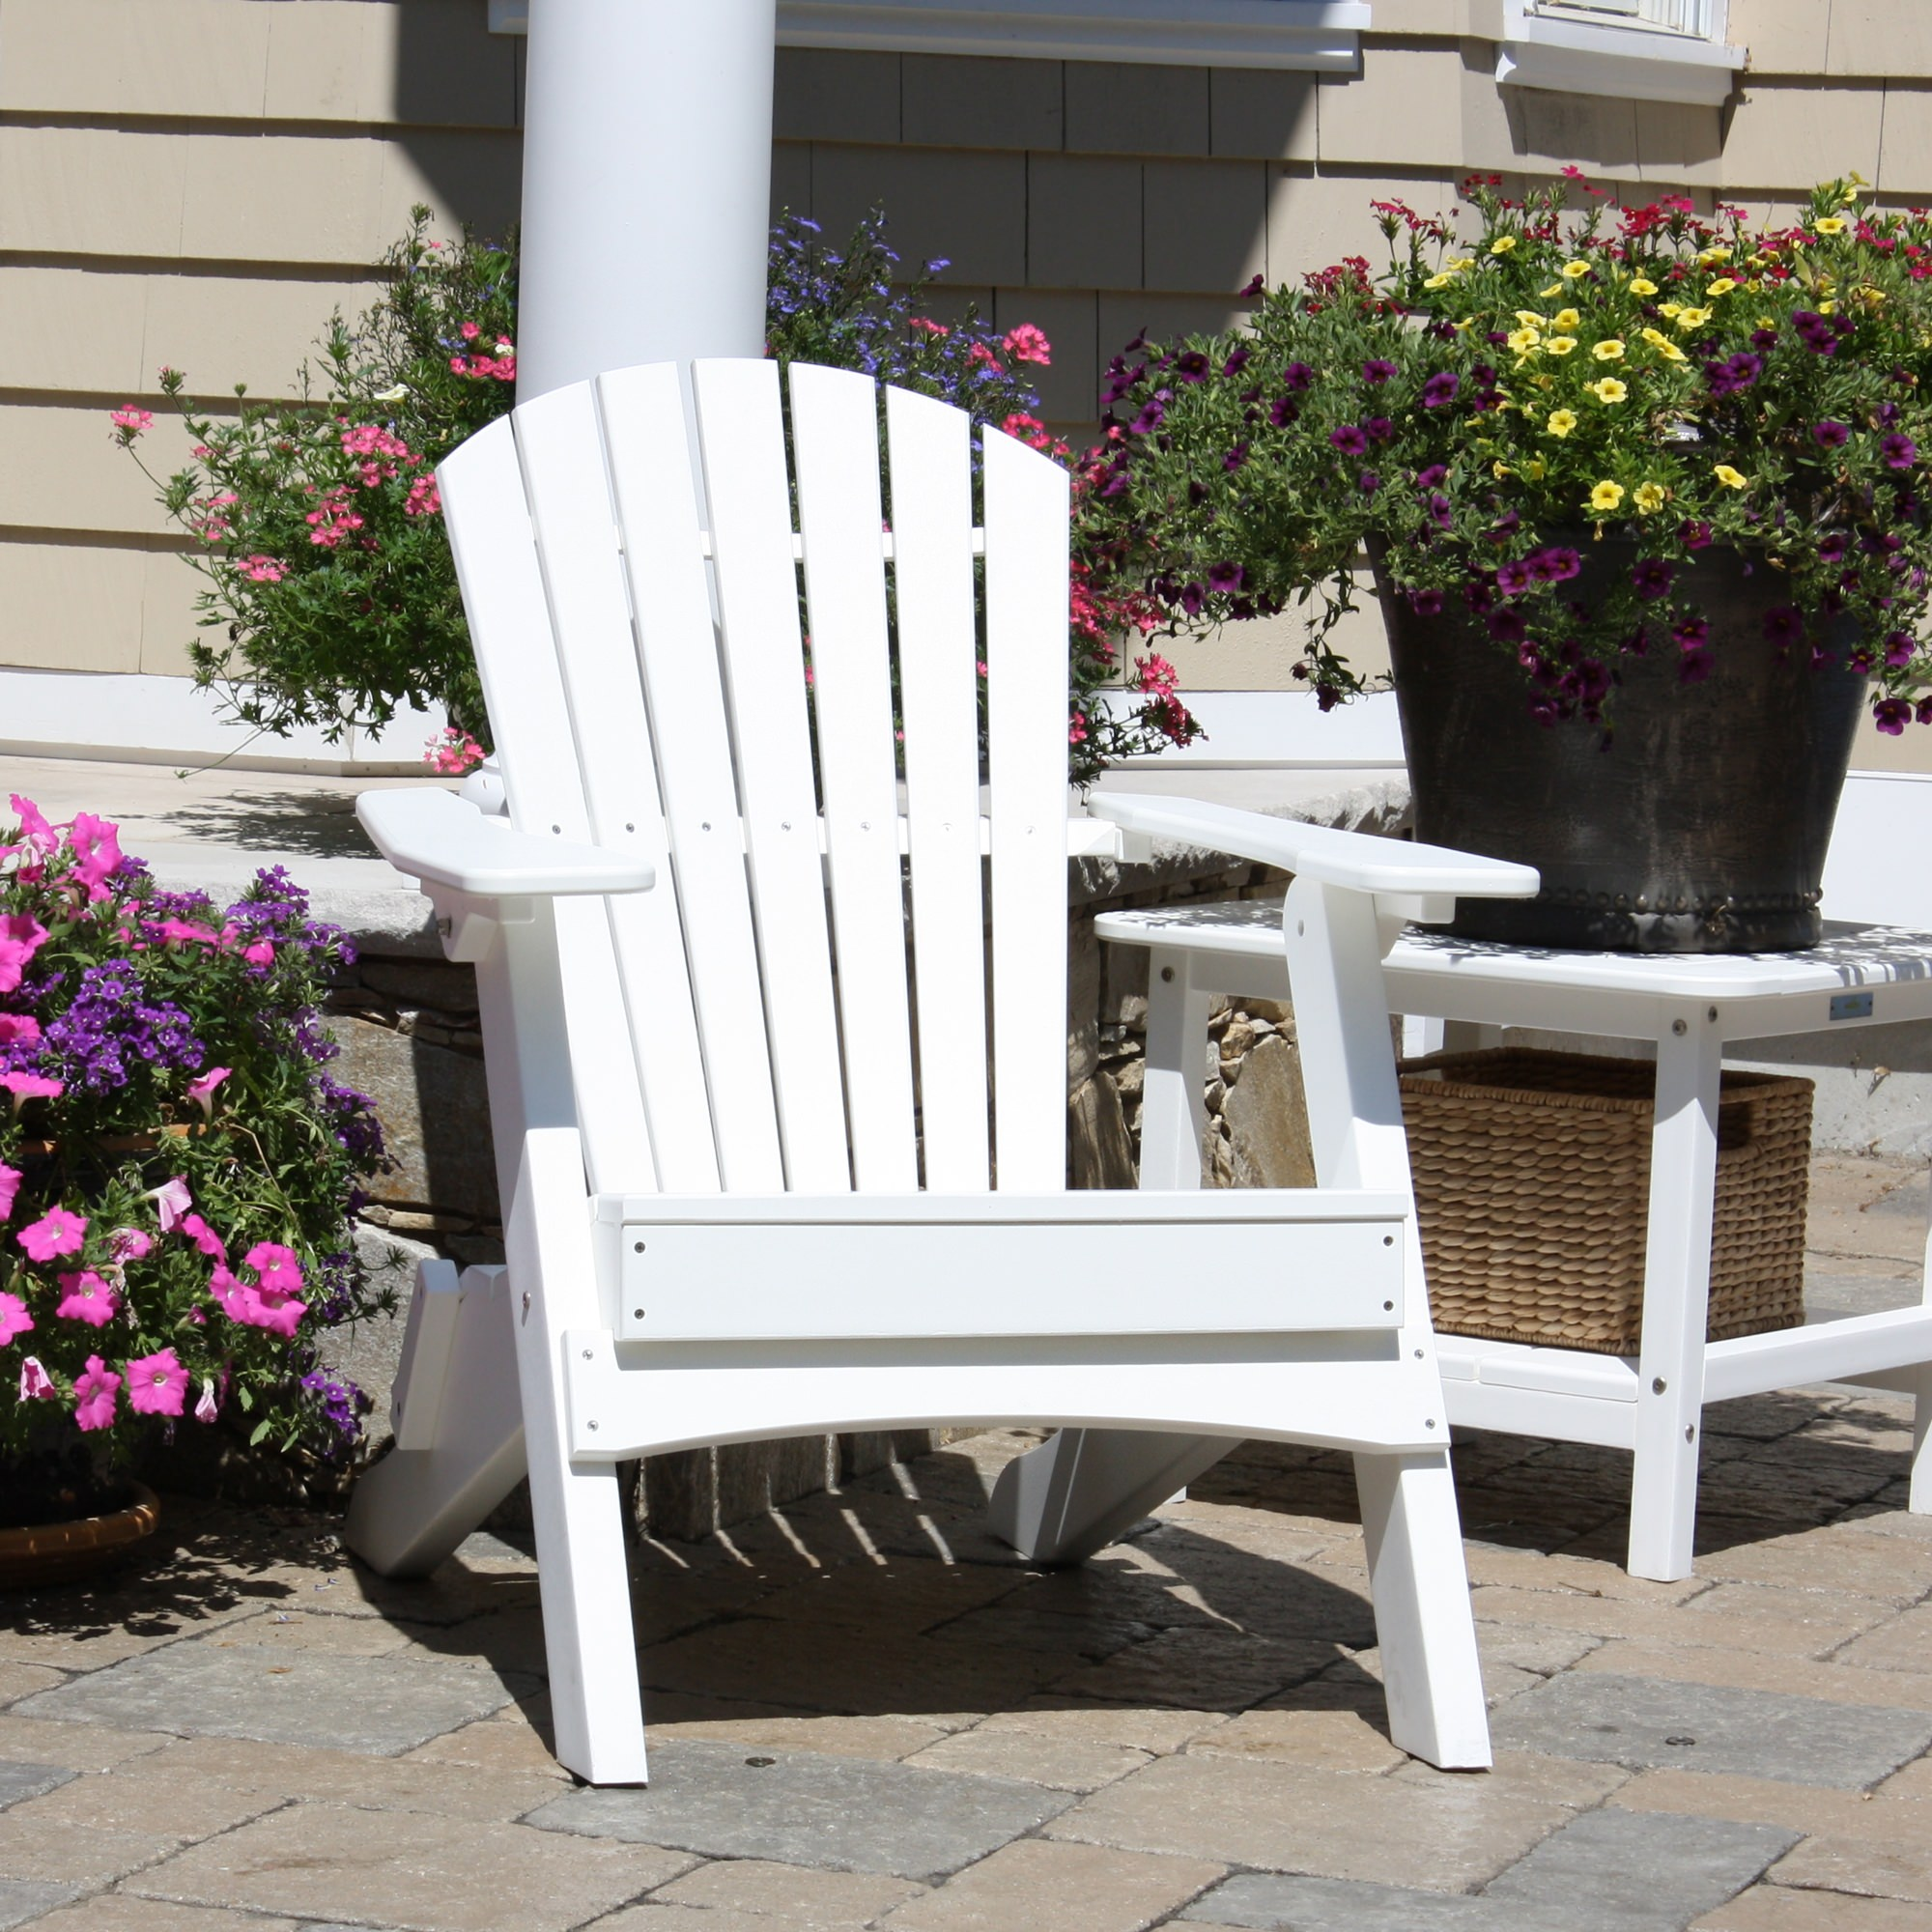 Hyannis Folding Adirondack Chair 14 Colors